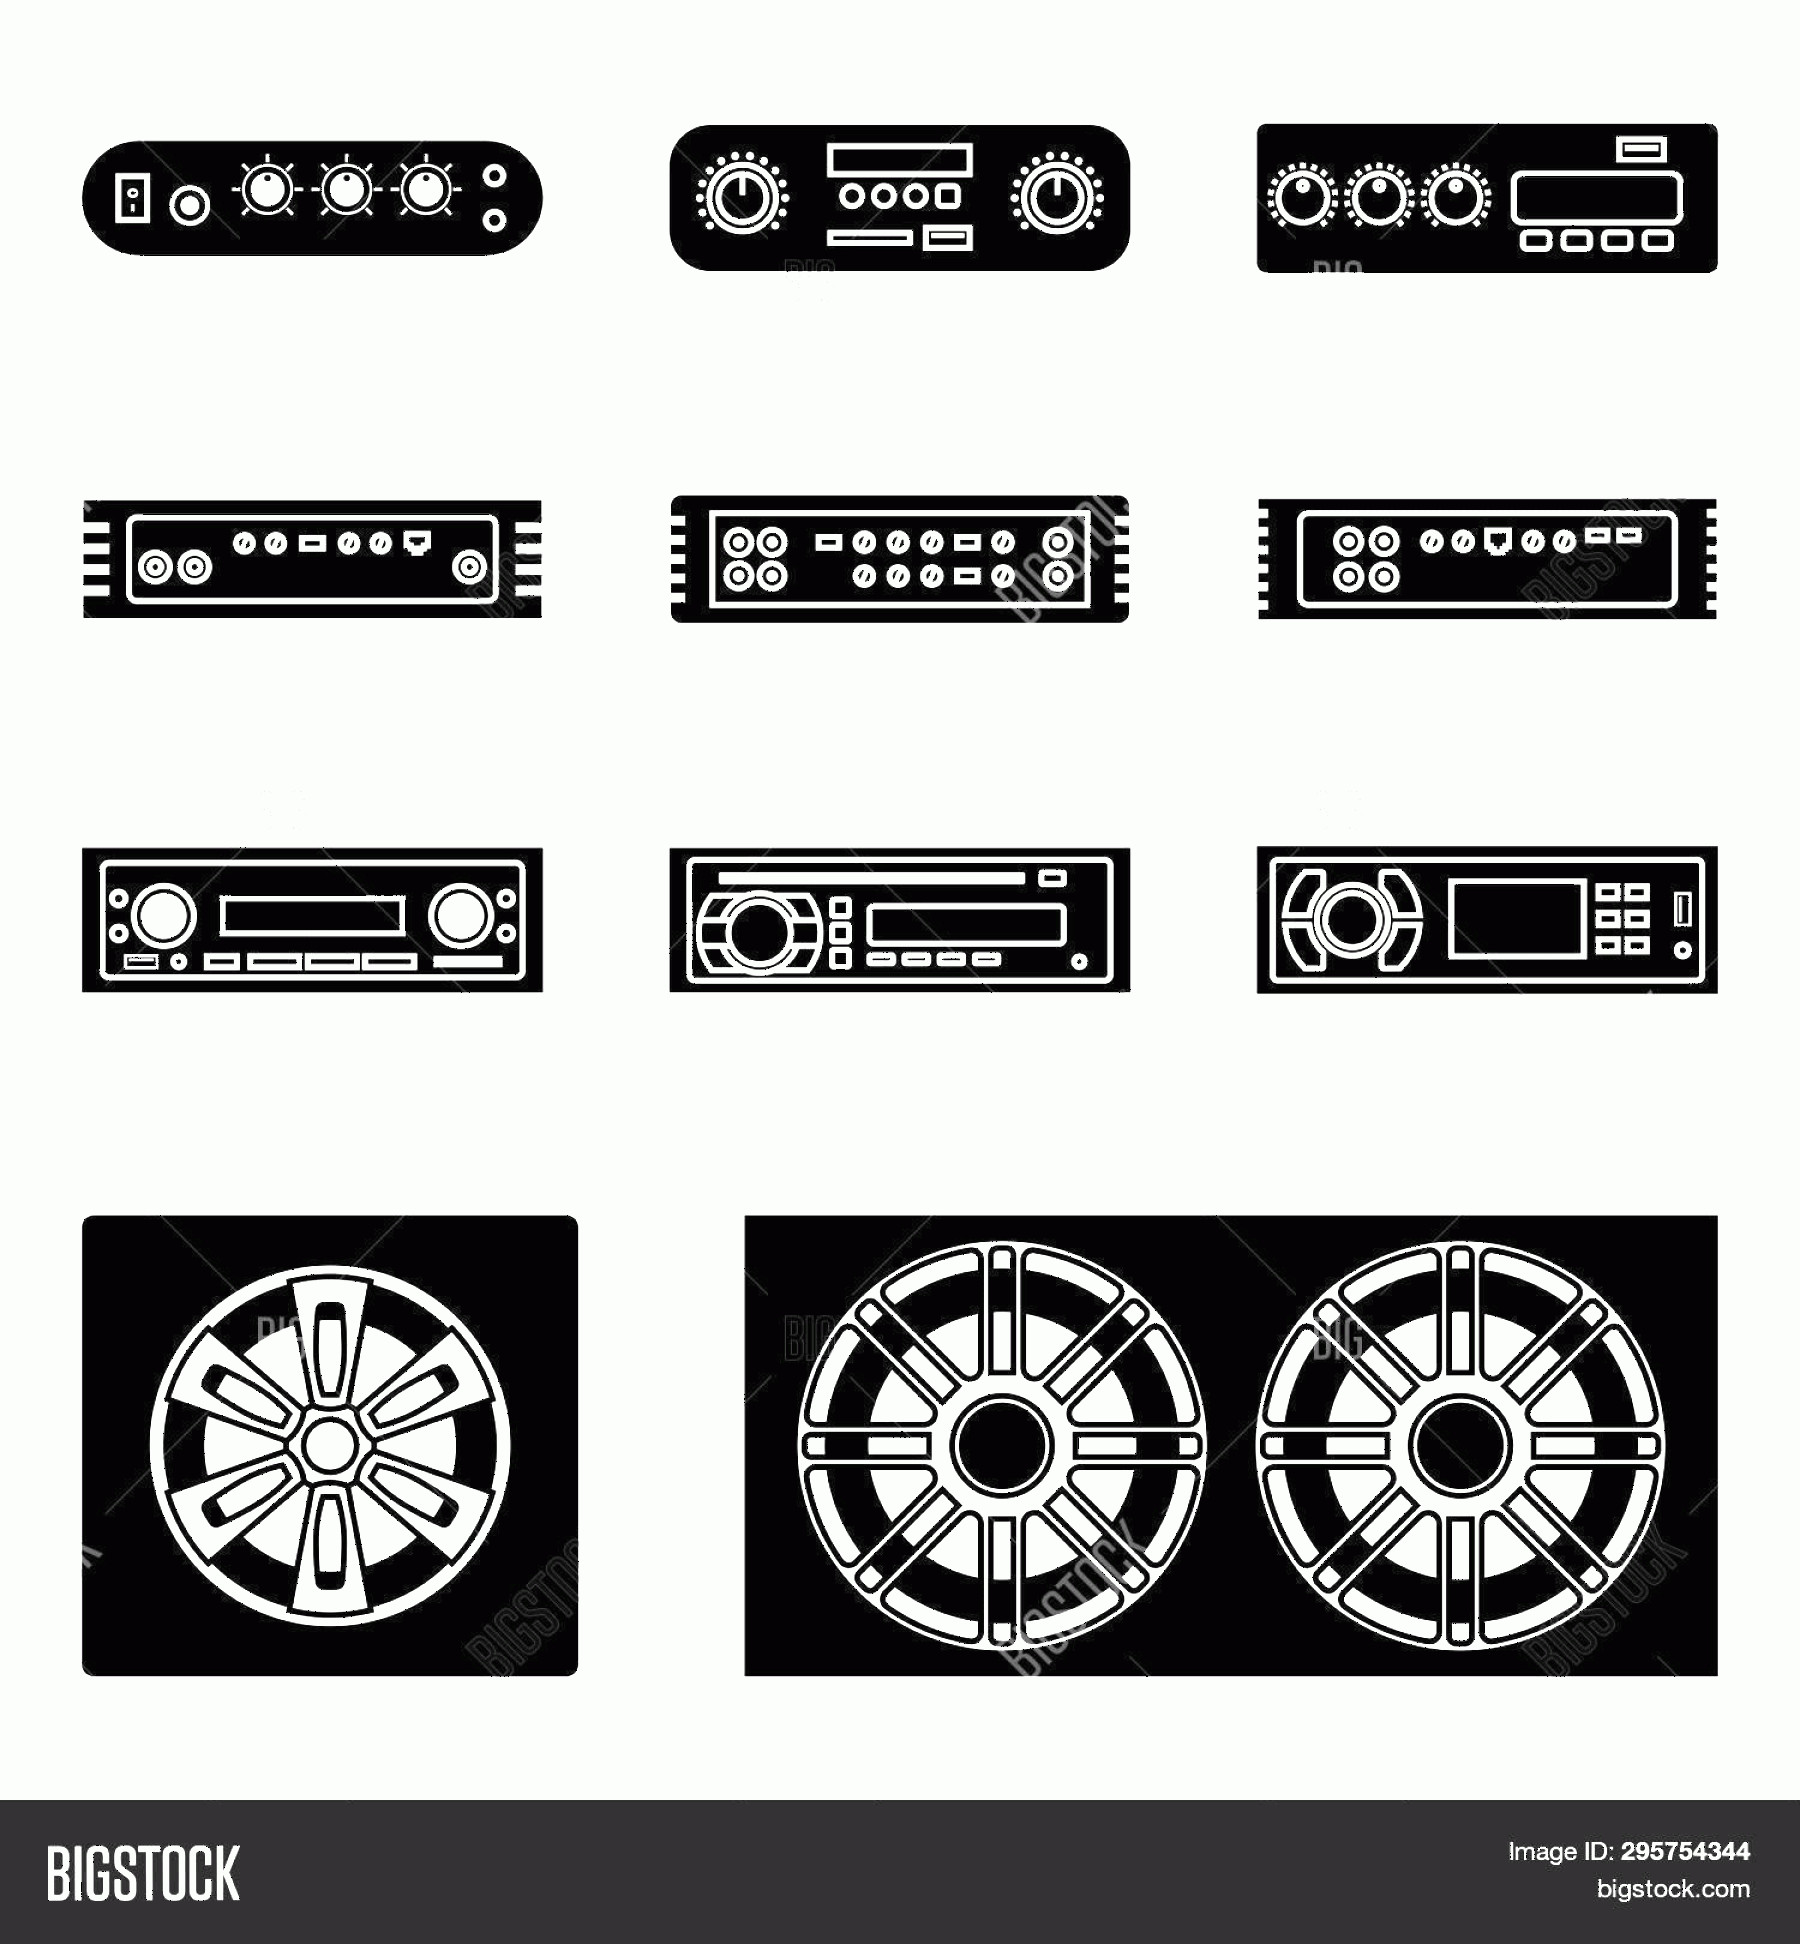 Car Audio Vector: Stock Vector Car Audio Speakerc Radio And Amplifier Silhouette Vector Icons